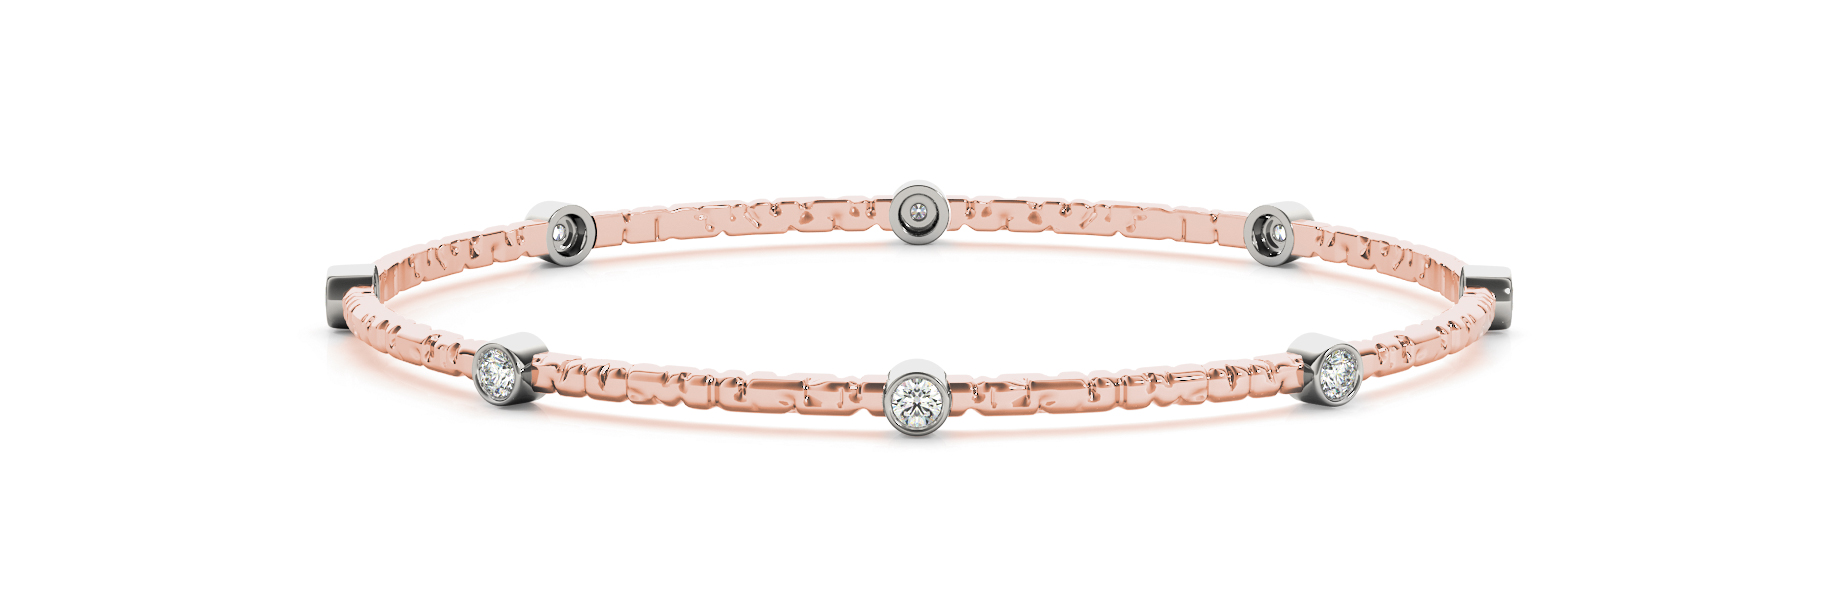 Diamond Bangle in Rose Gold 0.8 Carat